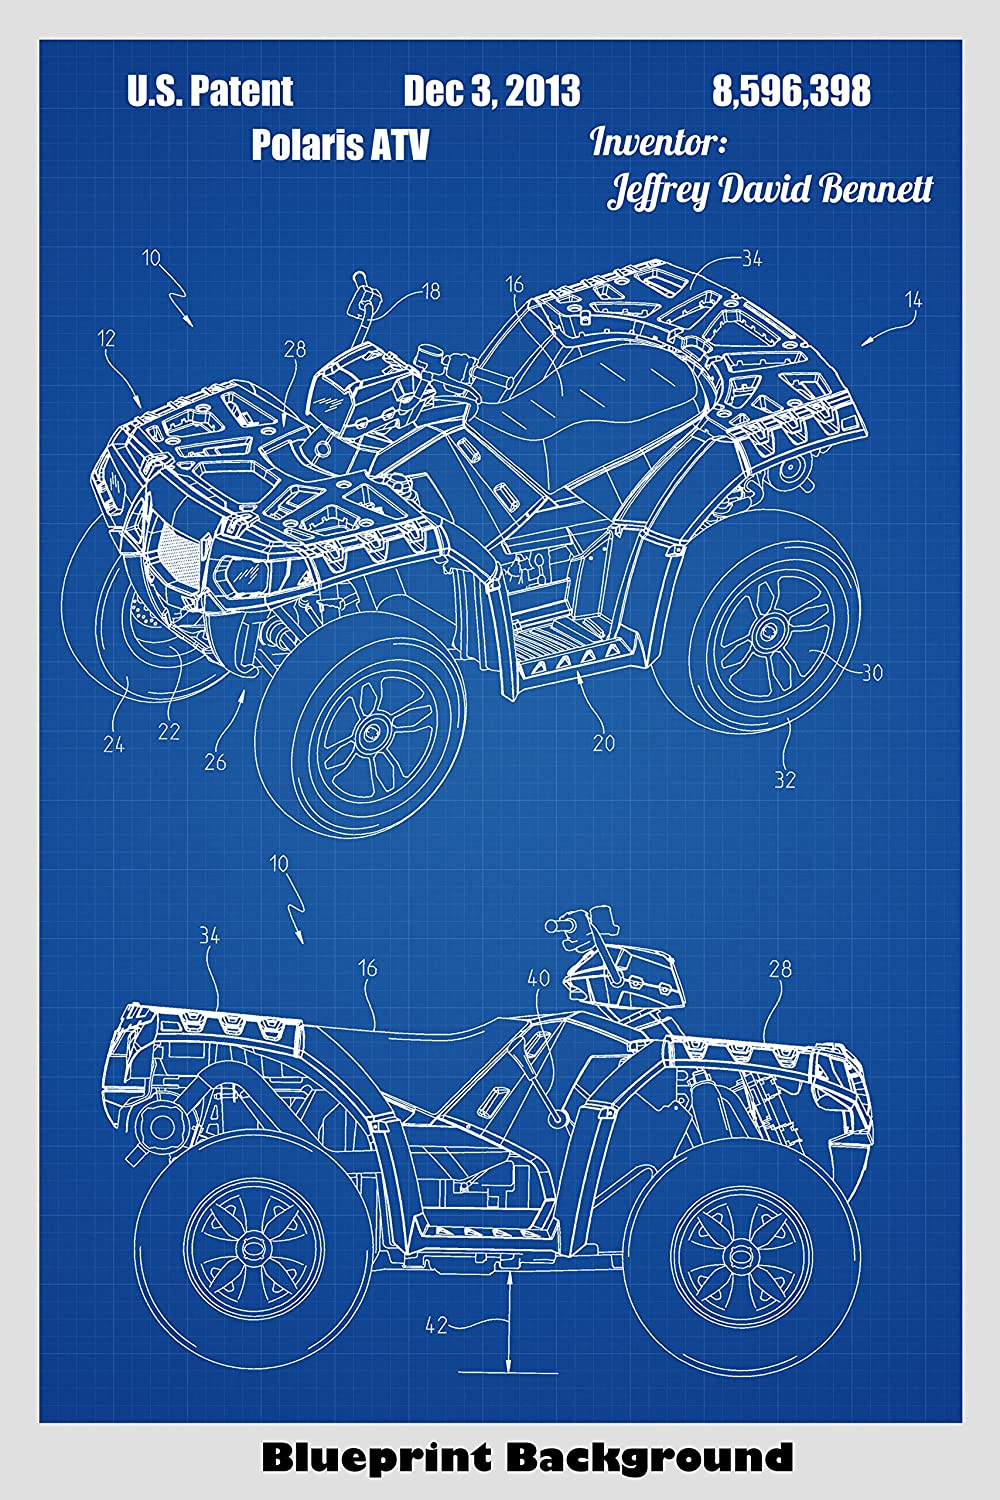 Amazon polaris four wheeler all terrain vehicle atv patent amazon polaris four wheeler all terrain vehicle atv patent print art poster choose from multiple size and background color options handmade malvernweather Gallery